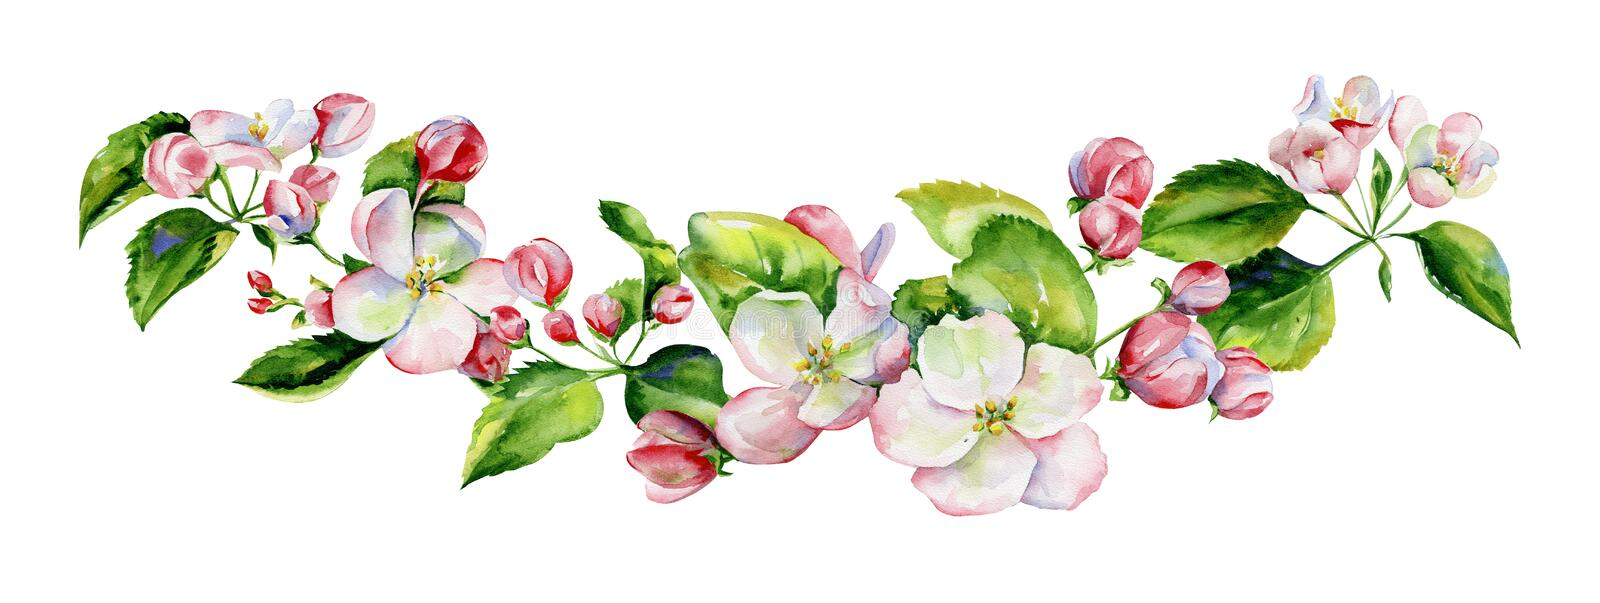 A blooming branch of apple tree in spring watercolor. royalty free illustration